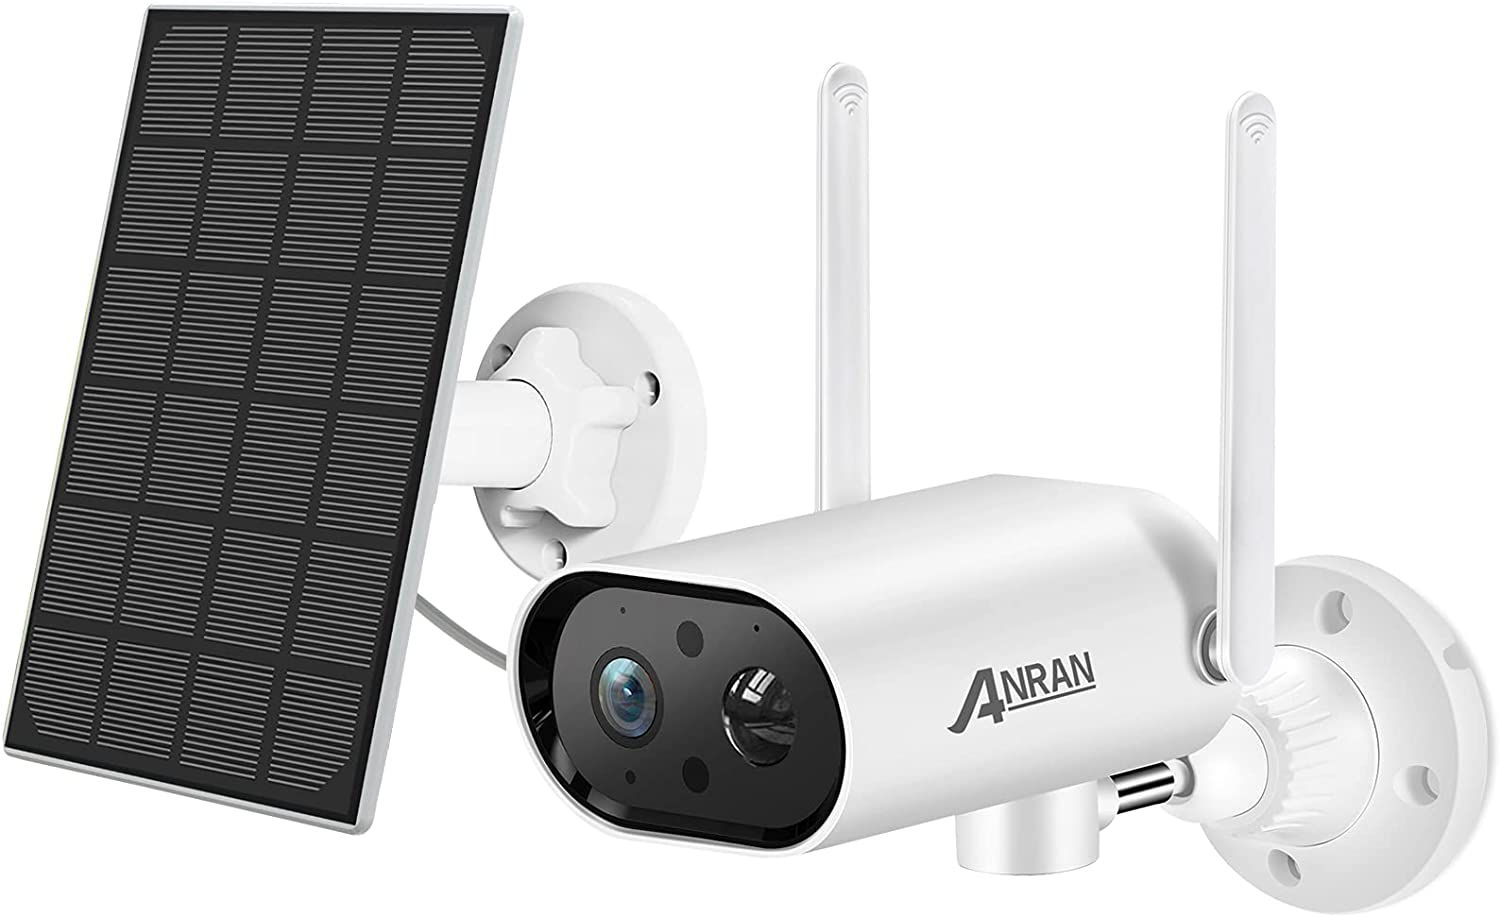 【180°Pan】 Wireless Solar Powered Security Outdoor Camera 1080P with 32GB SD Card,ANRAN WiFi Battery Surveillance Home IP Camera,Human Motion Detection,2 Way Audio,Night Vision,Waterproof,2.4Ghz WiFi